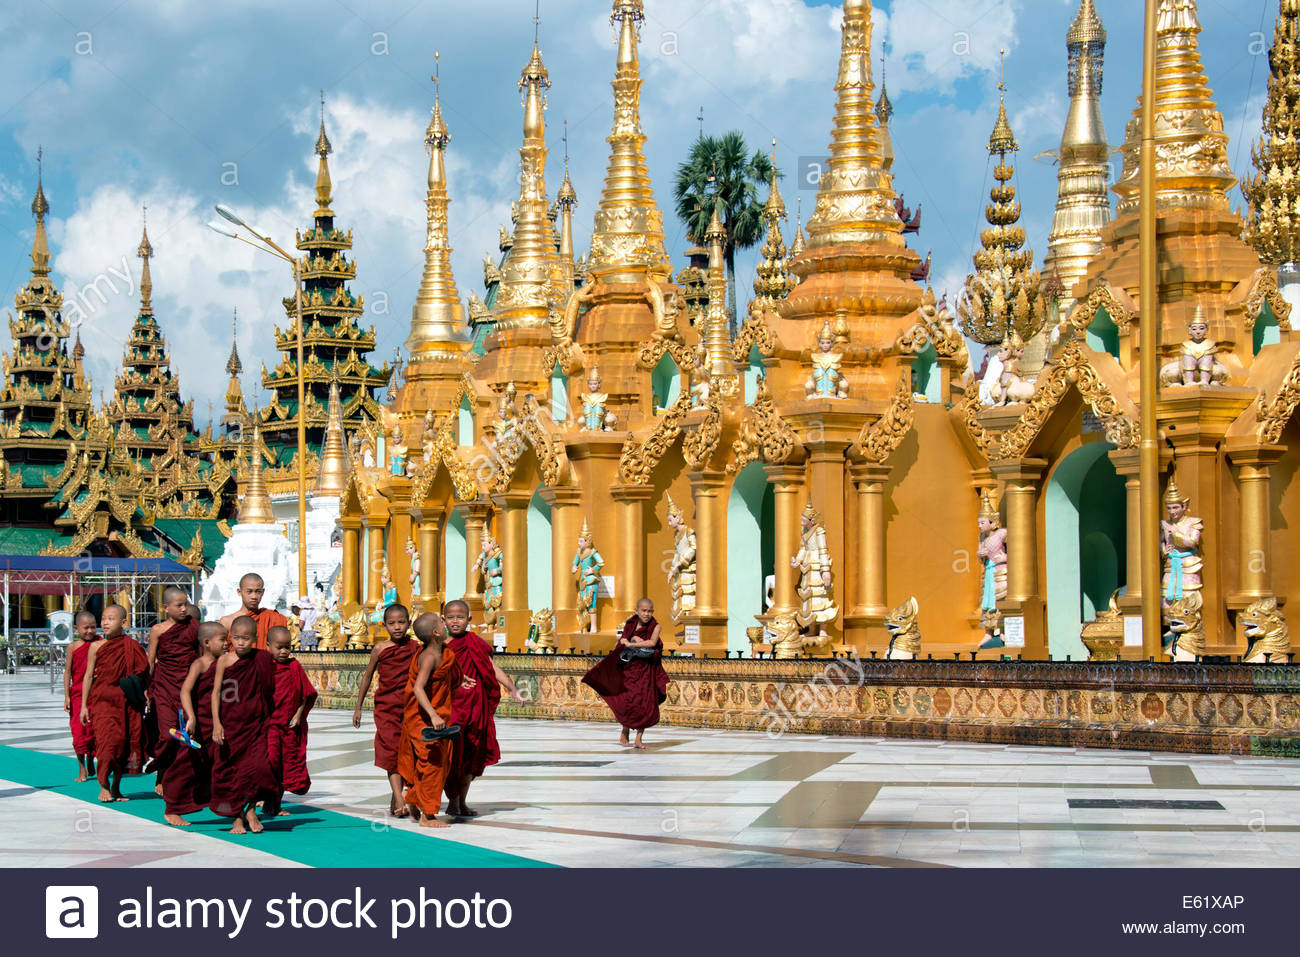 La Pagode Shwedagon à Yangon Myanmar (Birmanie) Photo Stock